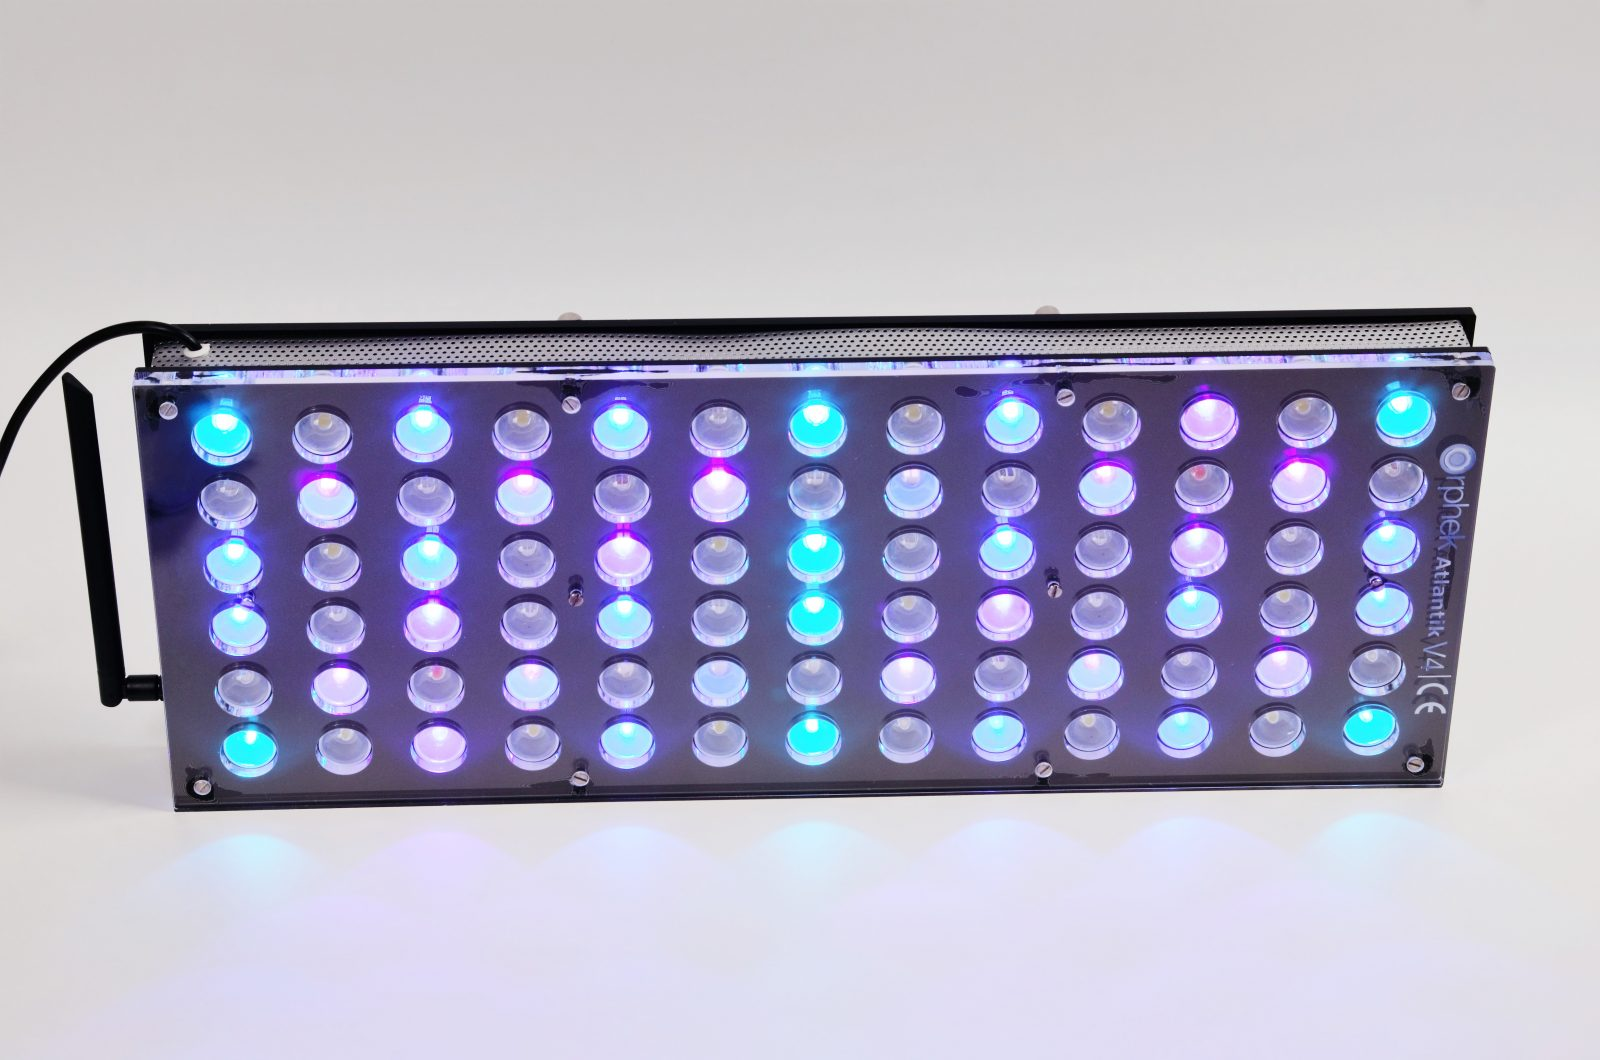 Orphek-Aquarium-LED-Lighting-Reef-Atlantik-V4-אור בערוץ 2 + 3